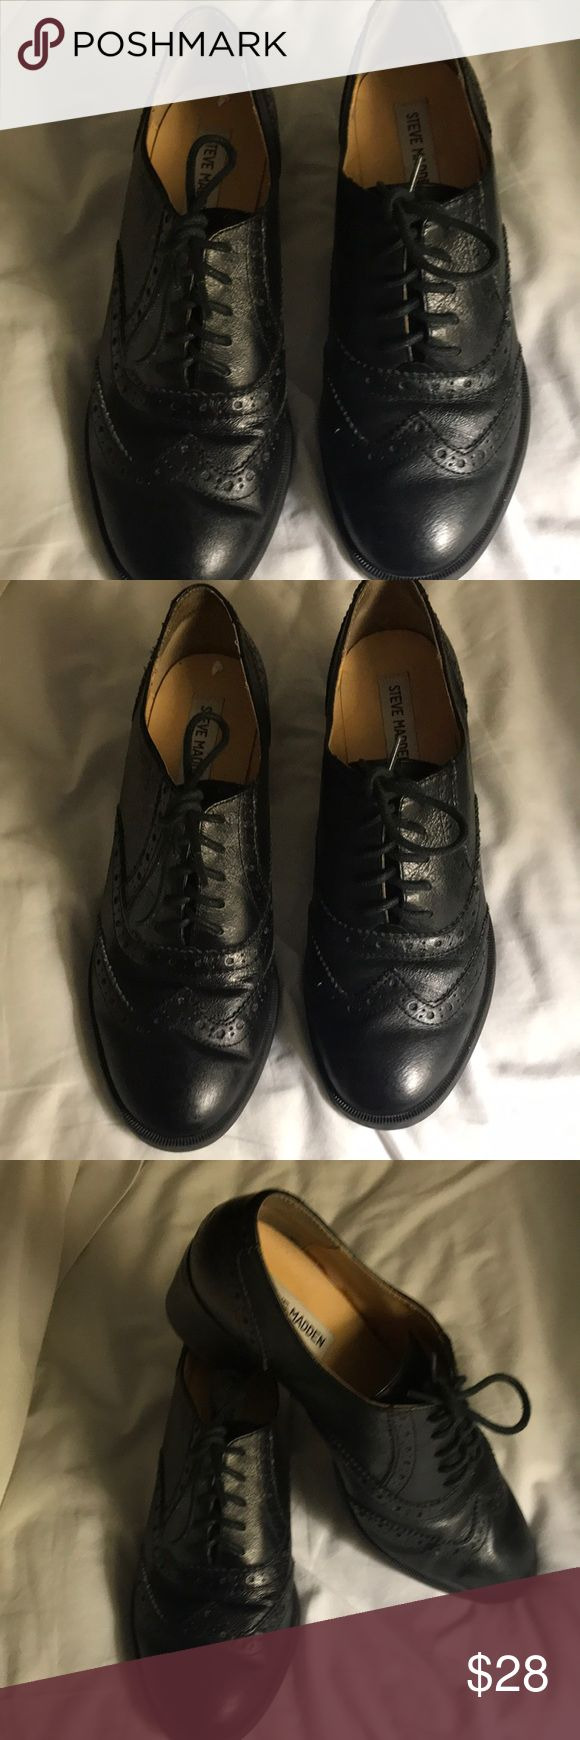 NWOT OXFORD LACE UPS BY STEVE MADDEN HAVE I MENTIONED HOW MUCHA FAN OF THE MENS STYLE OXFORD SHOES FOR WOMEN ! WELL IF NOT HERE IS ANOTHER PAIR ! Brand new worn around the house / A LITTLE TOO BIG ON ME ! BLACK ON BLACK LEATHER THESE SHOES GO WITH ANYTHING! AND THE PRICE IS AMAZING. LOVE THE SPECTATOR FRONT ! SO AMAZINGLY COOL Steve Madden Shoes